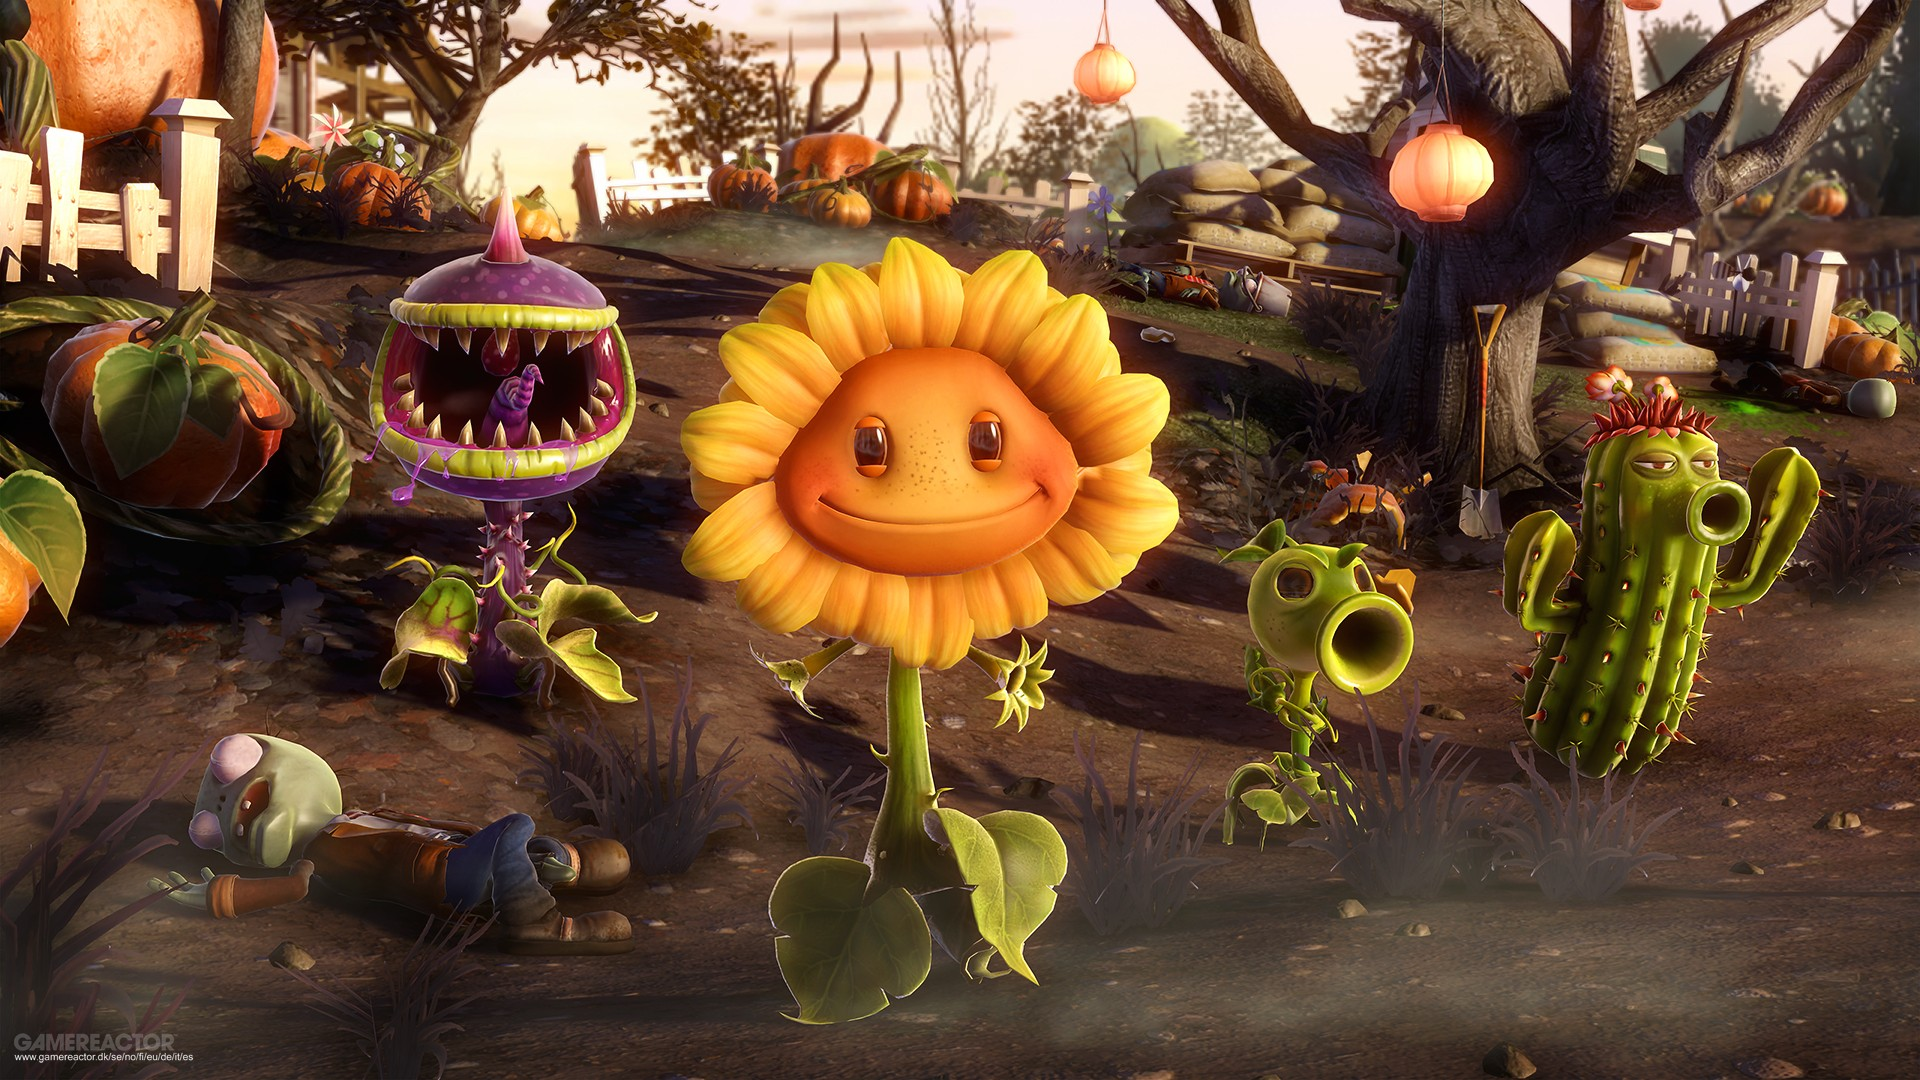 Pictures of Plants vs Zombies: Garden Warfare on EA Access? 3/4